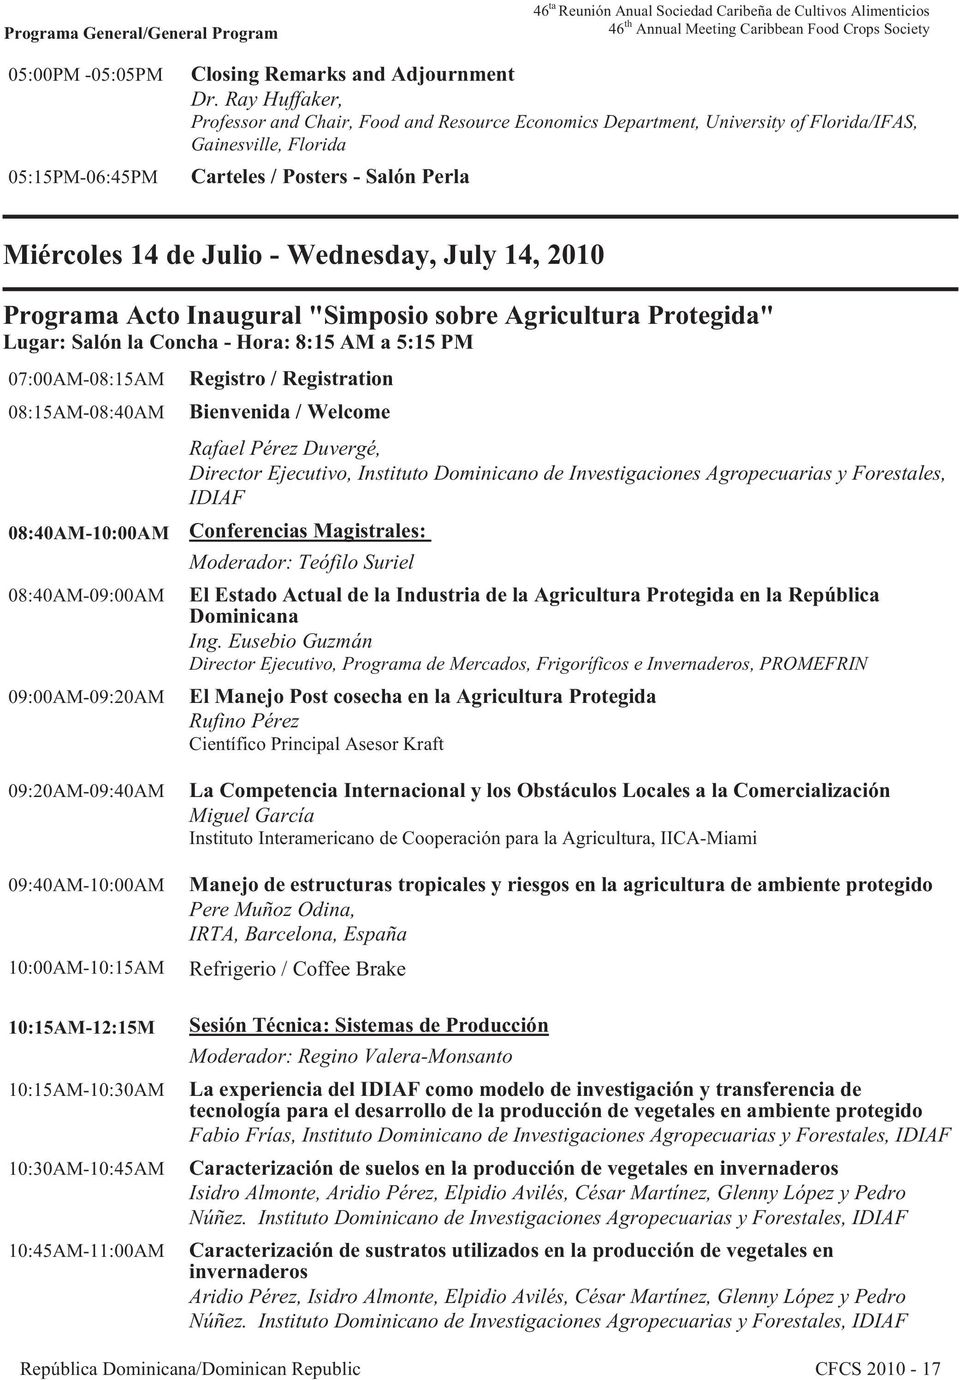 Ray Huffaker, Professor and Chair, Food and Resource Economics Department, University of Florida/IFAS, Gainesville, Florida Carteles / Posters - Salón Perla Miércoles 14 de Julio - Wednesday, July